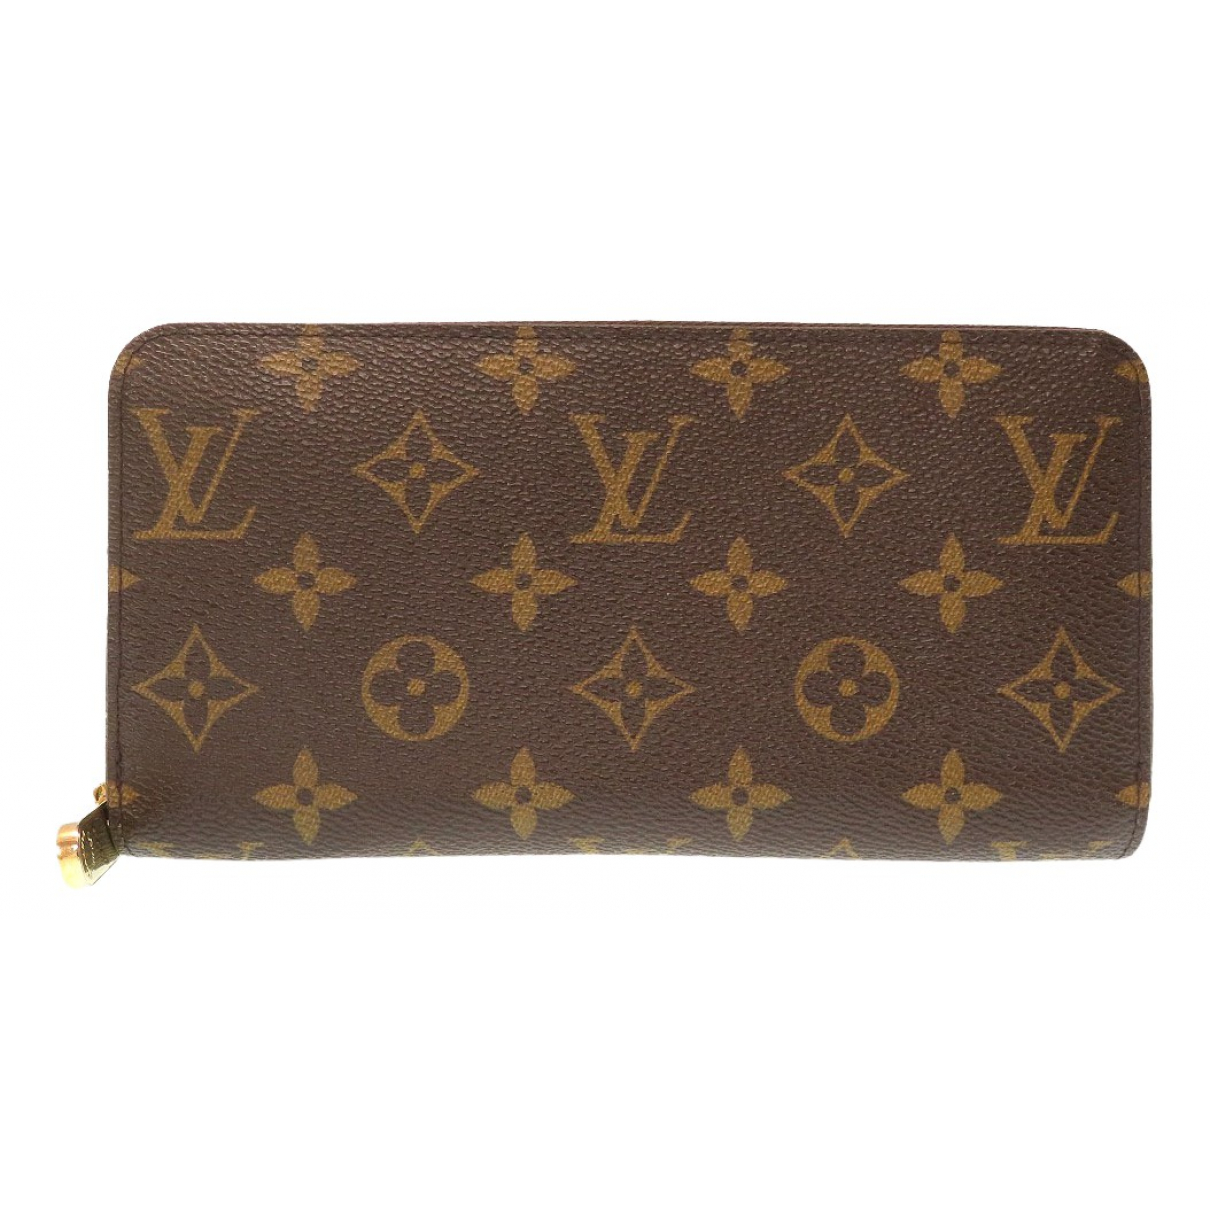 Cartera Zippy de Lona Louis Vuitton